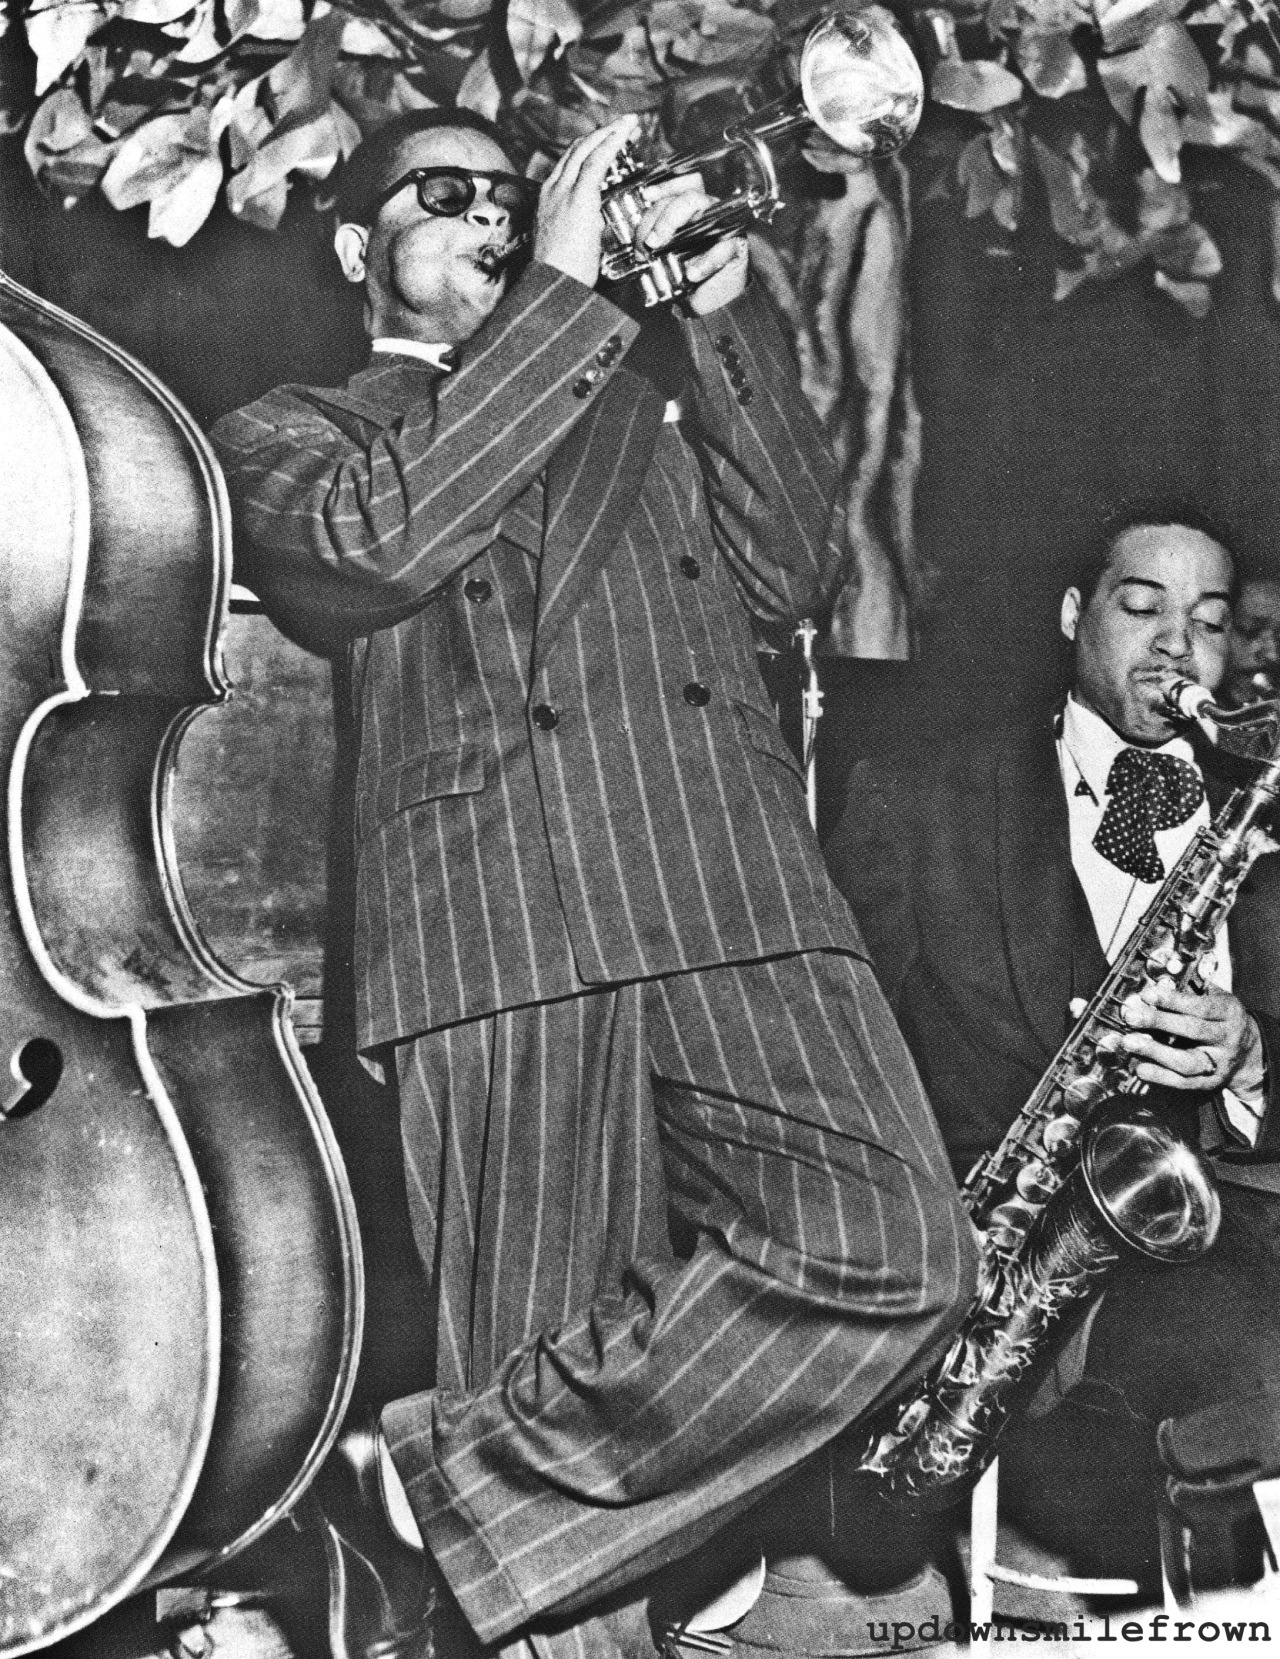 updownsmilefrown:  Dizzy Gillespie jamming at the Royal Roost in New York, 1948